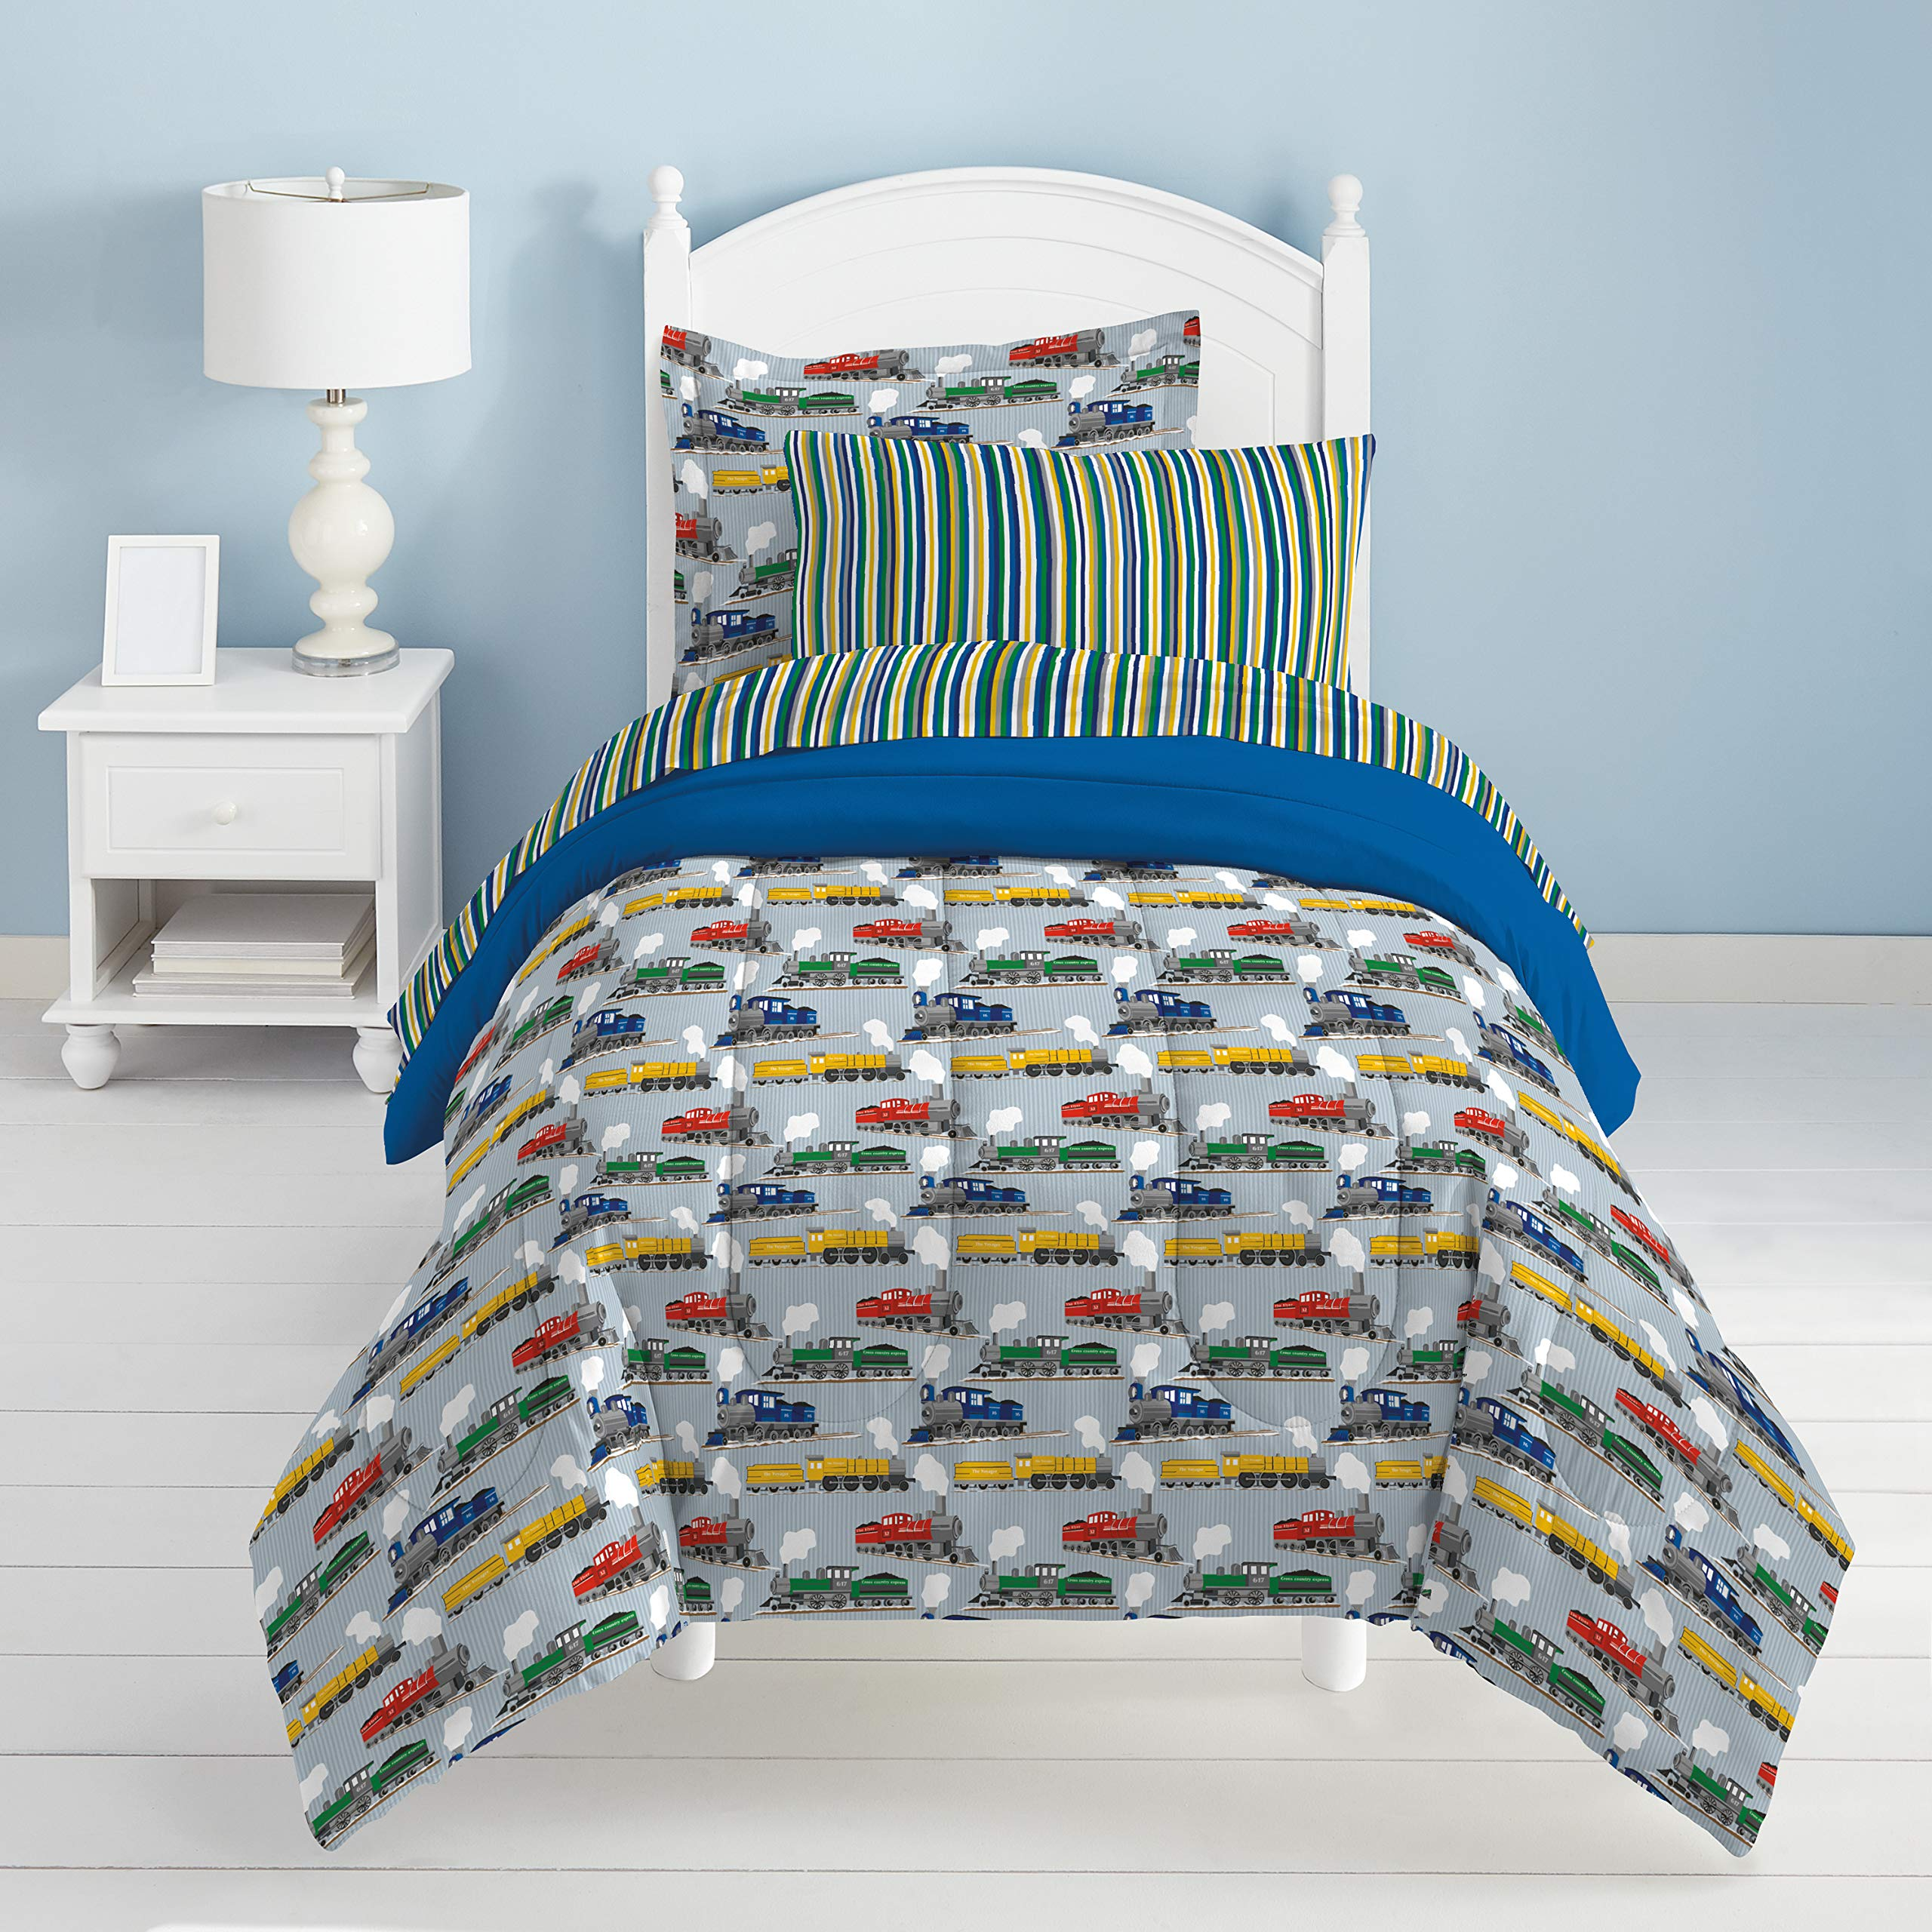 Dream Factory Trains Ultra Soft Microfiber Boys Comforter Set, Blue, Full by Dream Factory (Image #6)